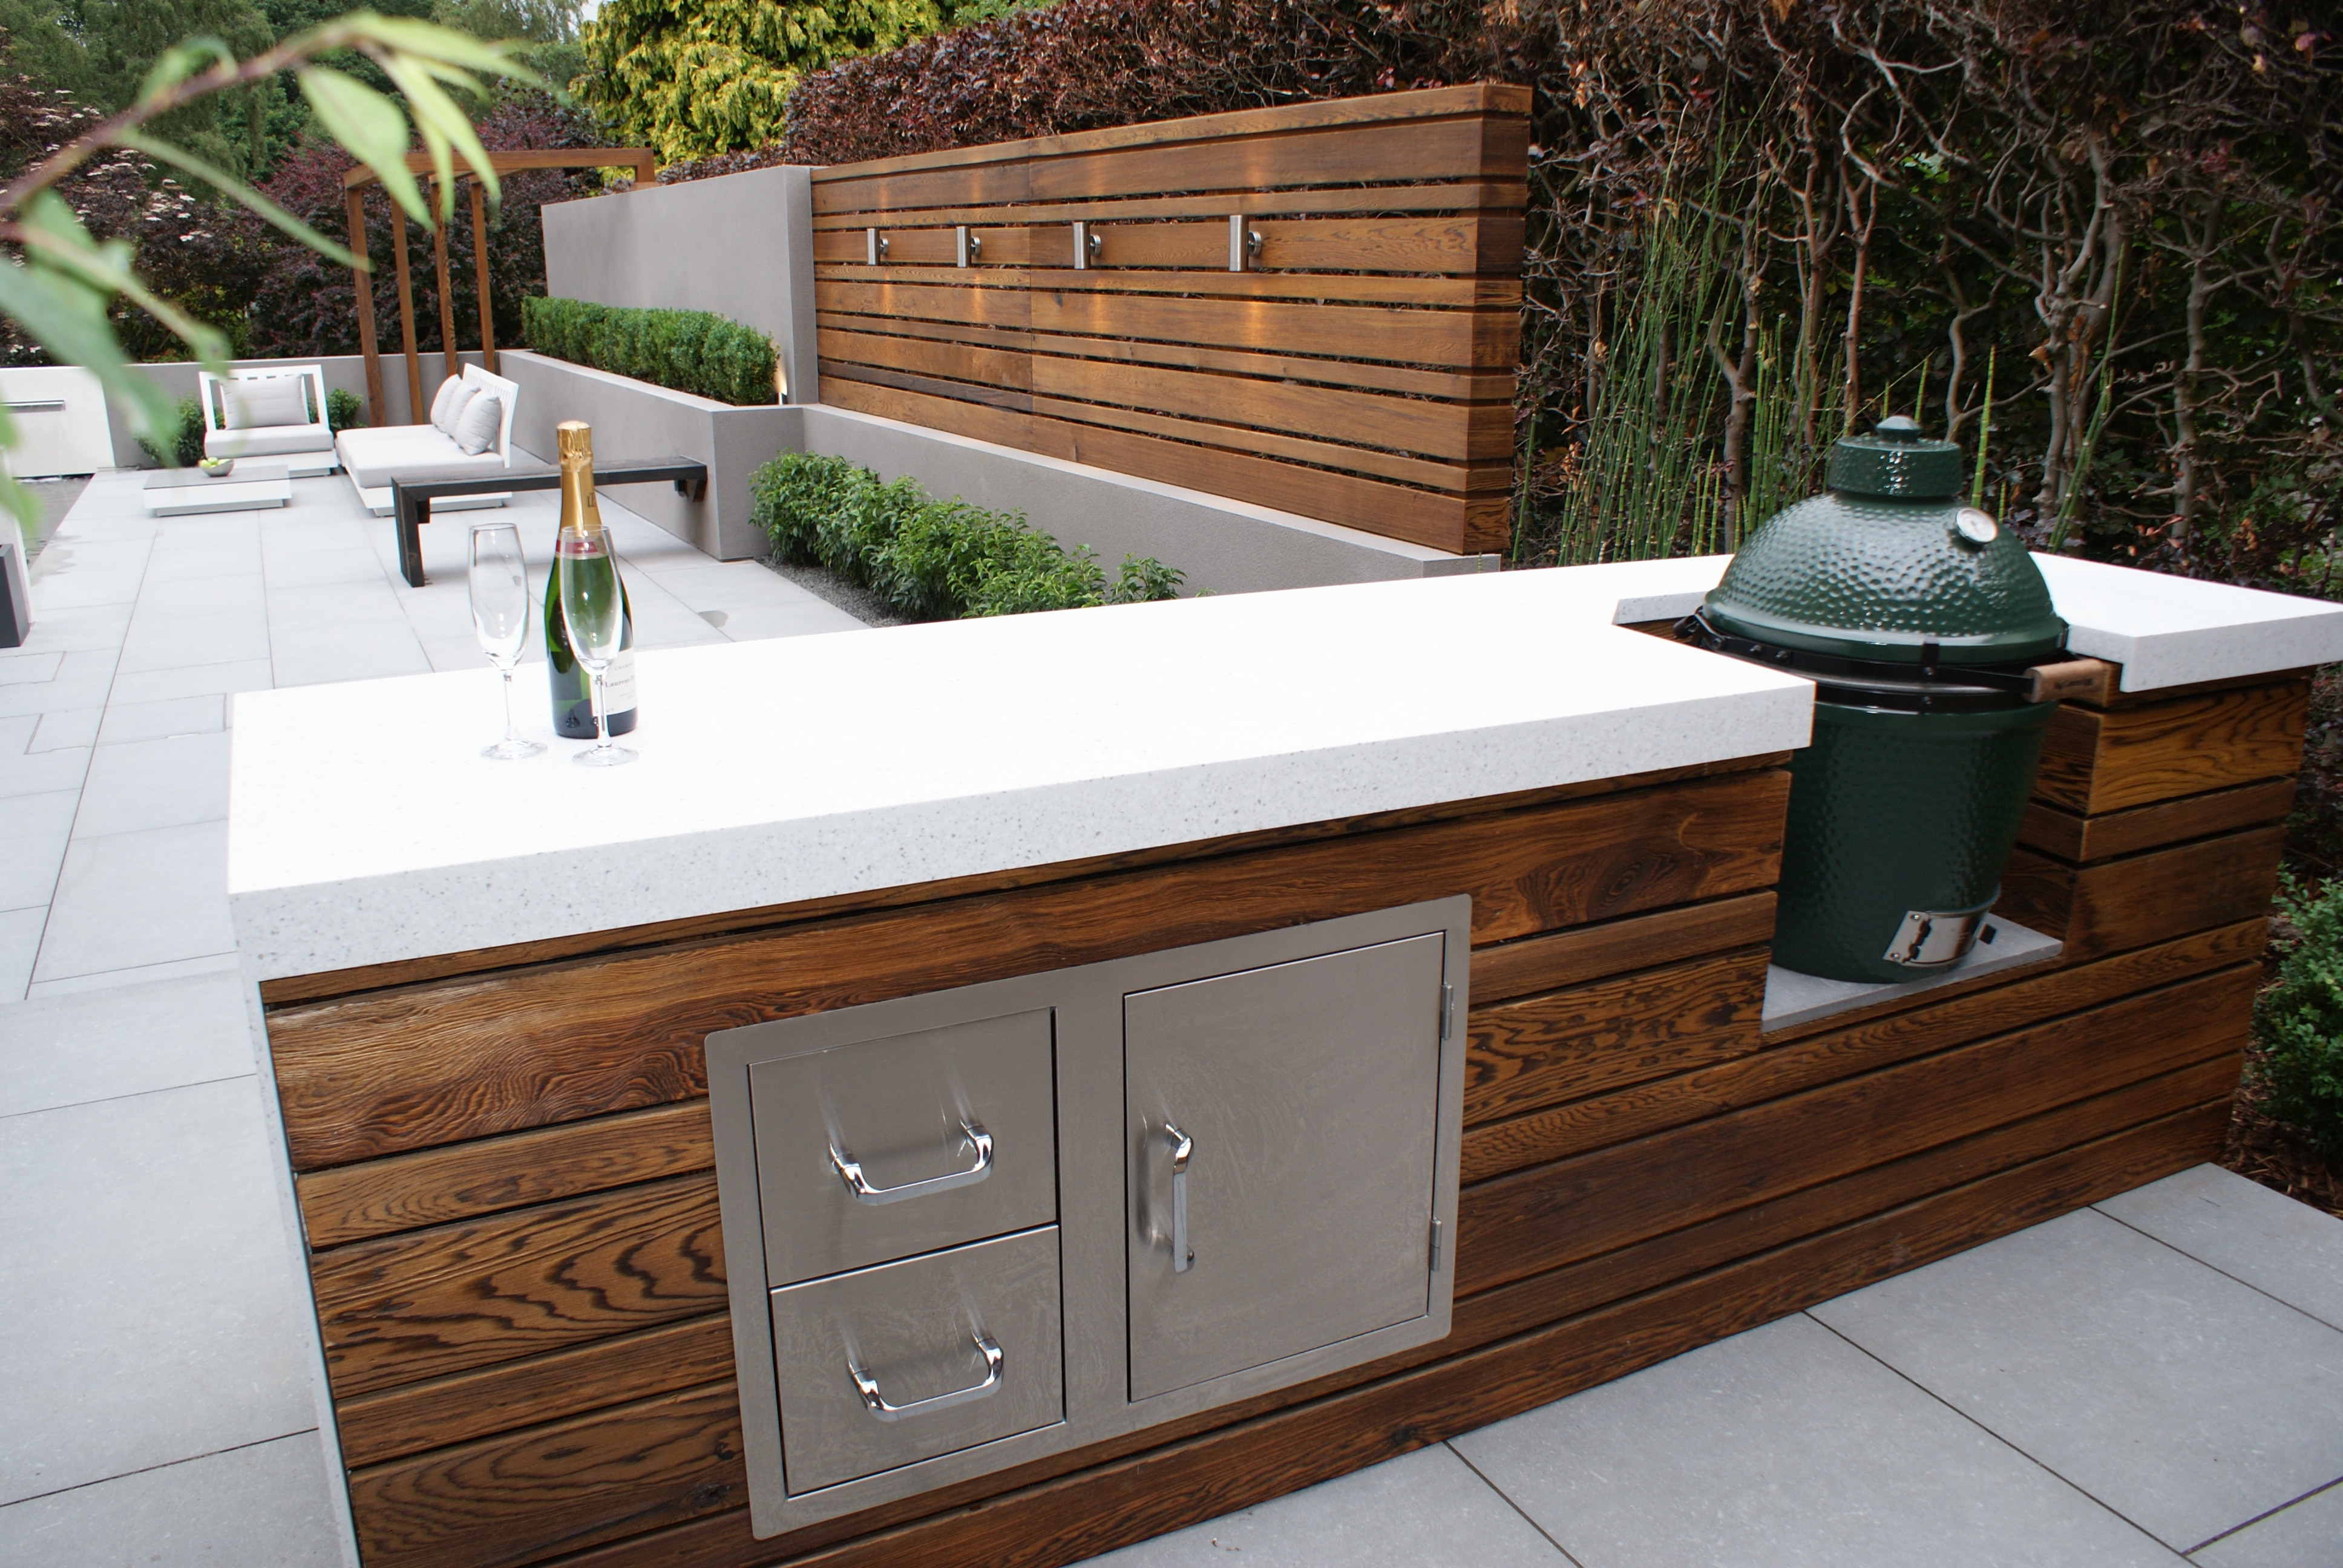 Hannah Collins Uses Shou Sugi Ban® in her Latest Beautiful Garden